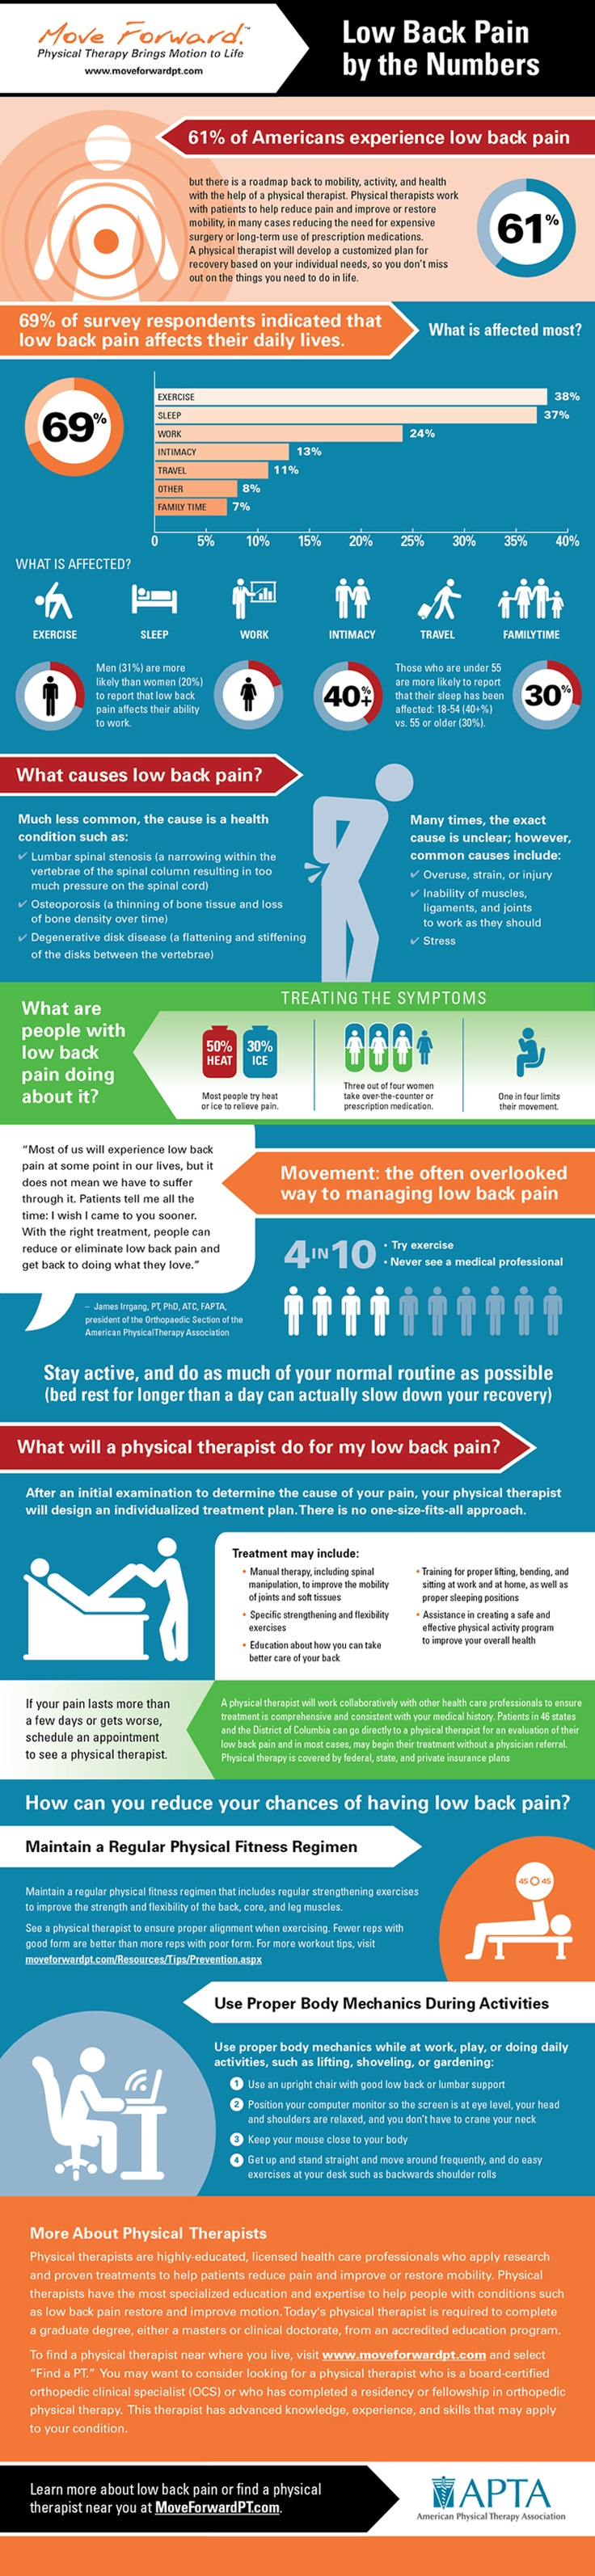 Low Back Pain By the Numbers